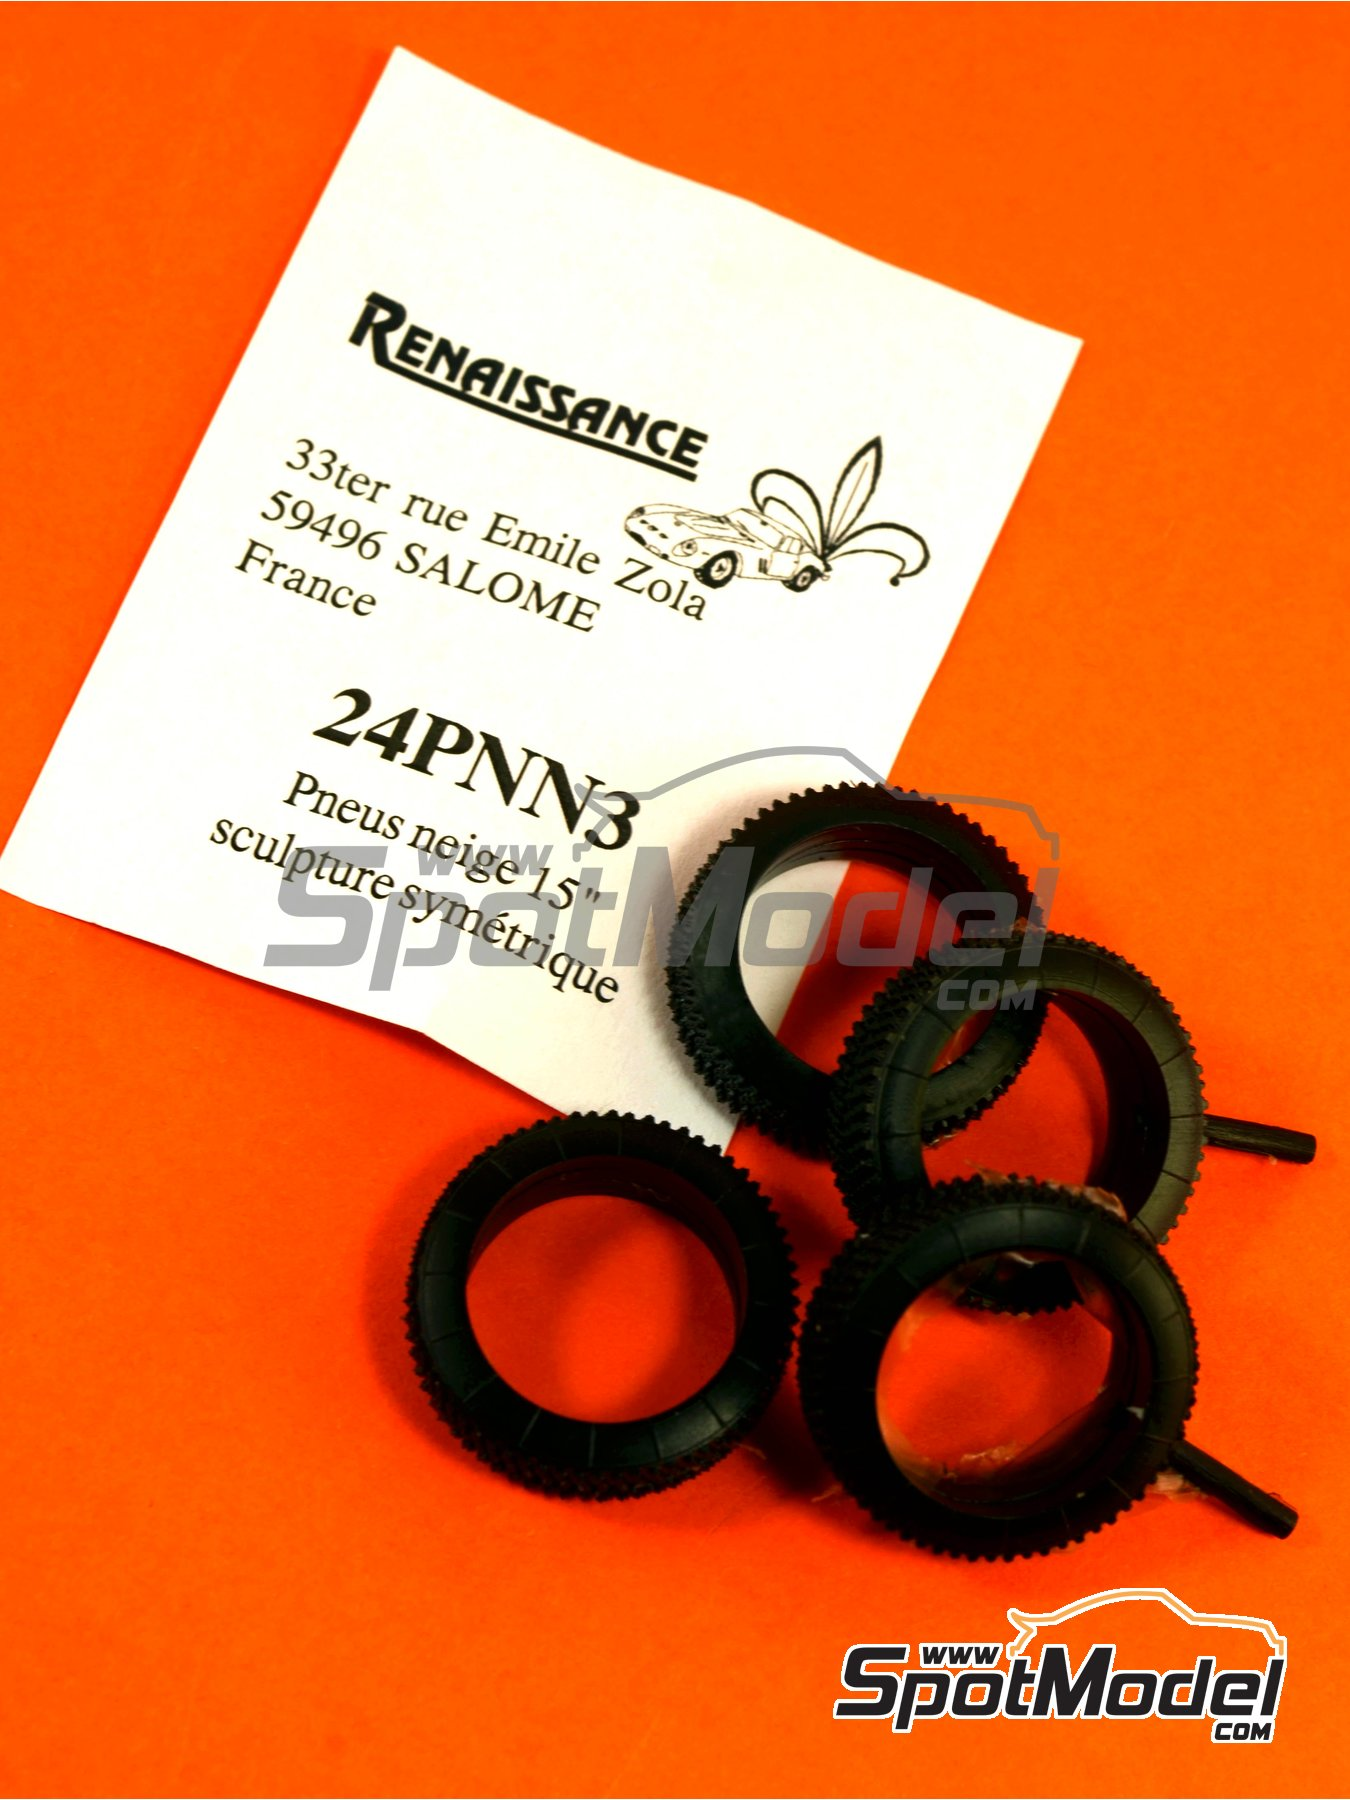 15 inches snow symmetric tyres | Tyre set in 1/24 scale manufactured by Renaissance Models (ref.24PNN3) image